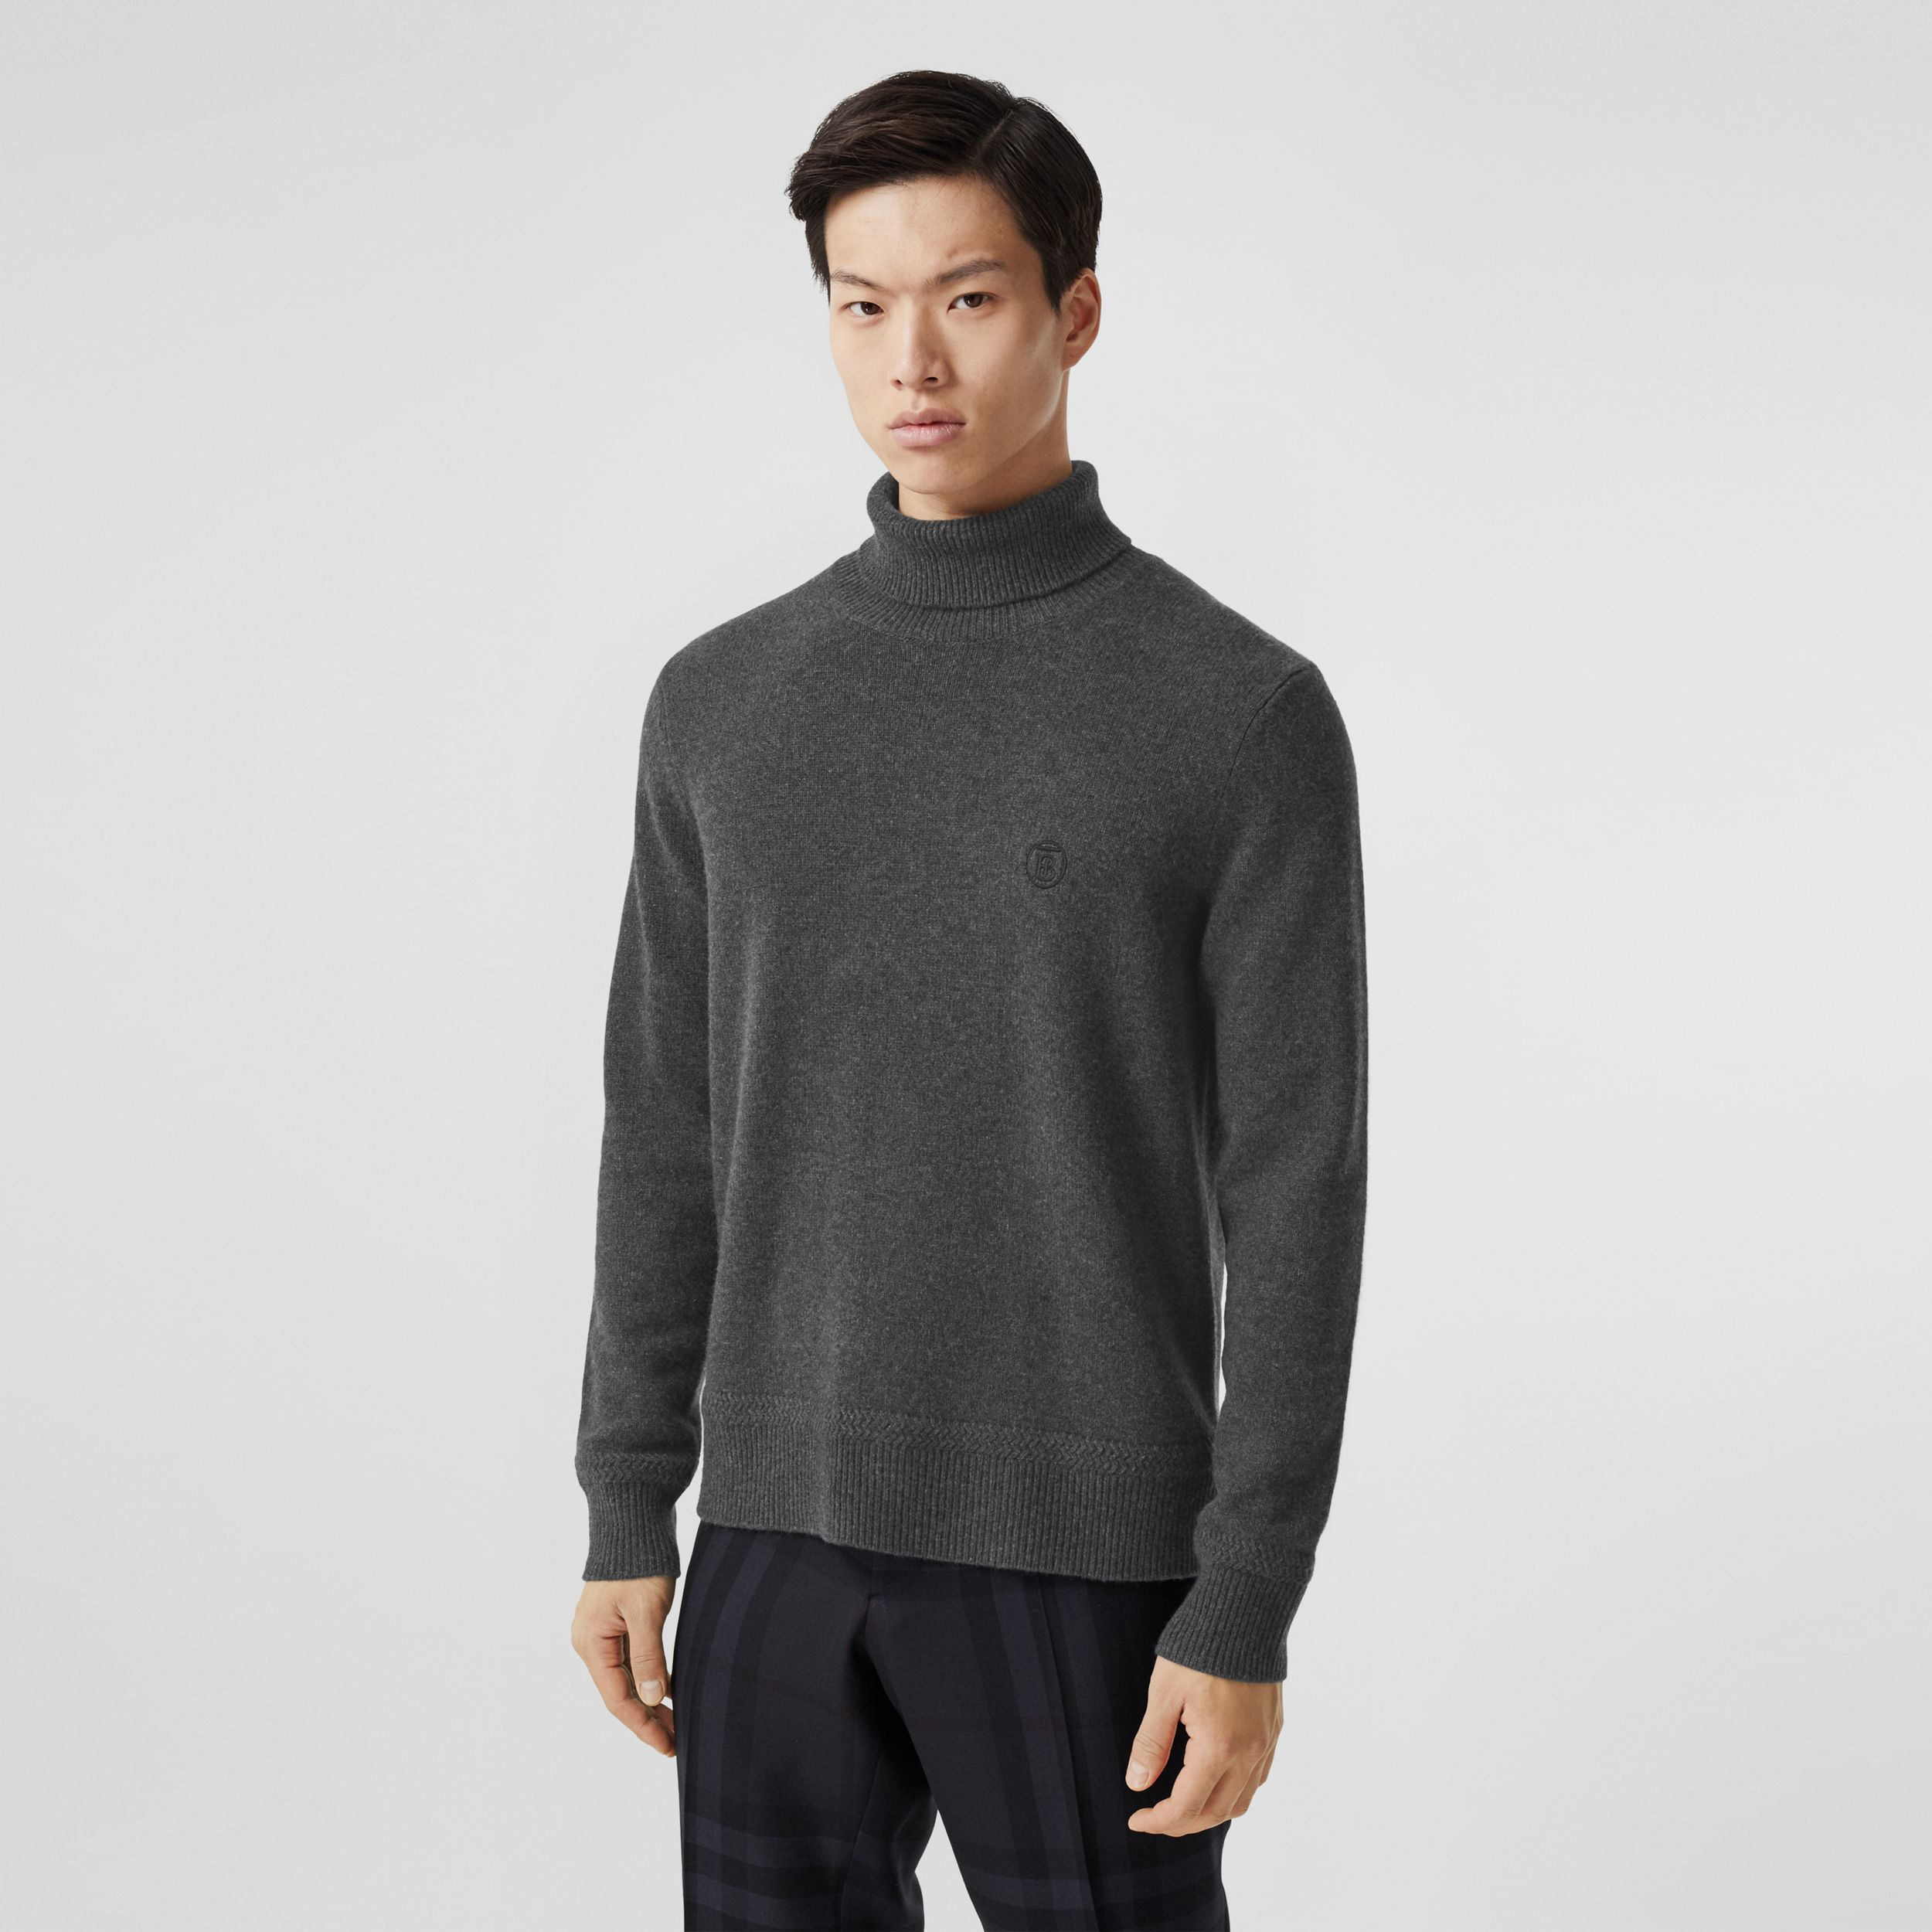 Monogram Motif Cashmere Roll-neck Sweater in Charcoal - Men | Burberry - 1